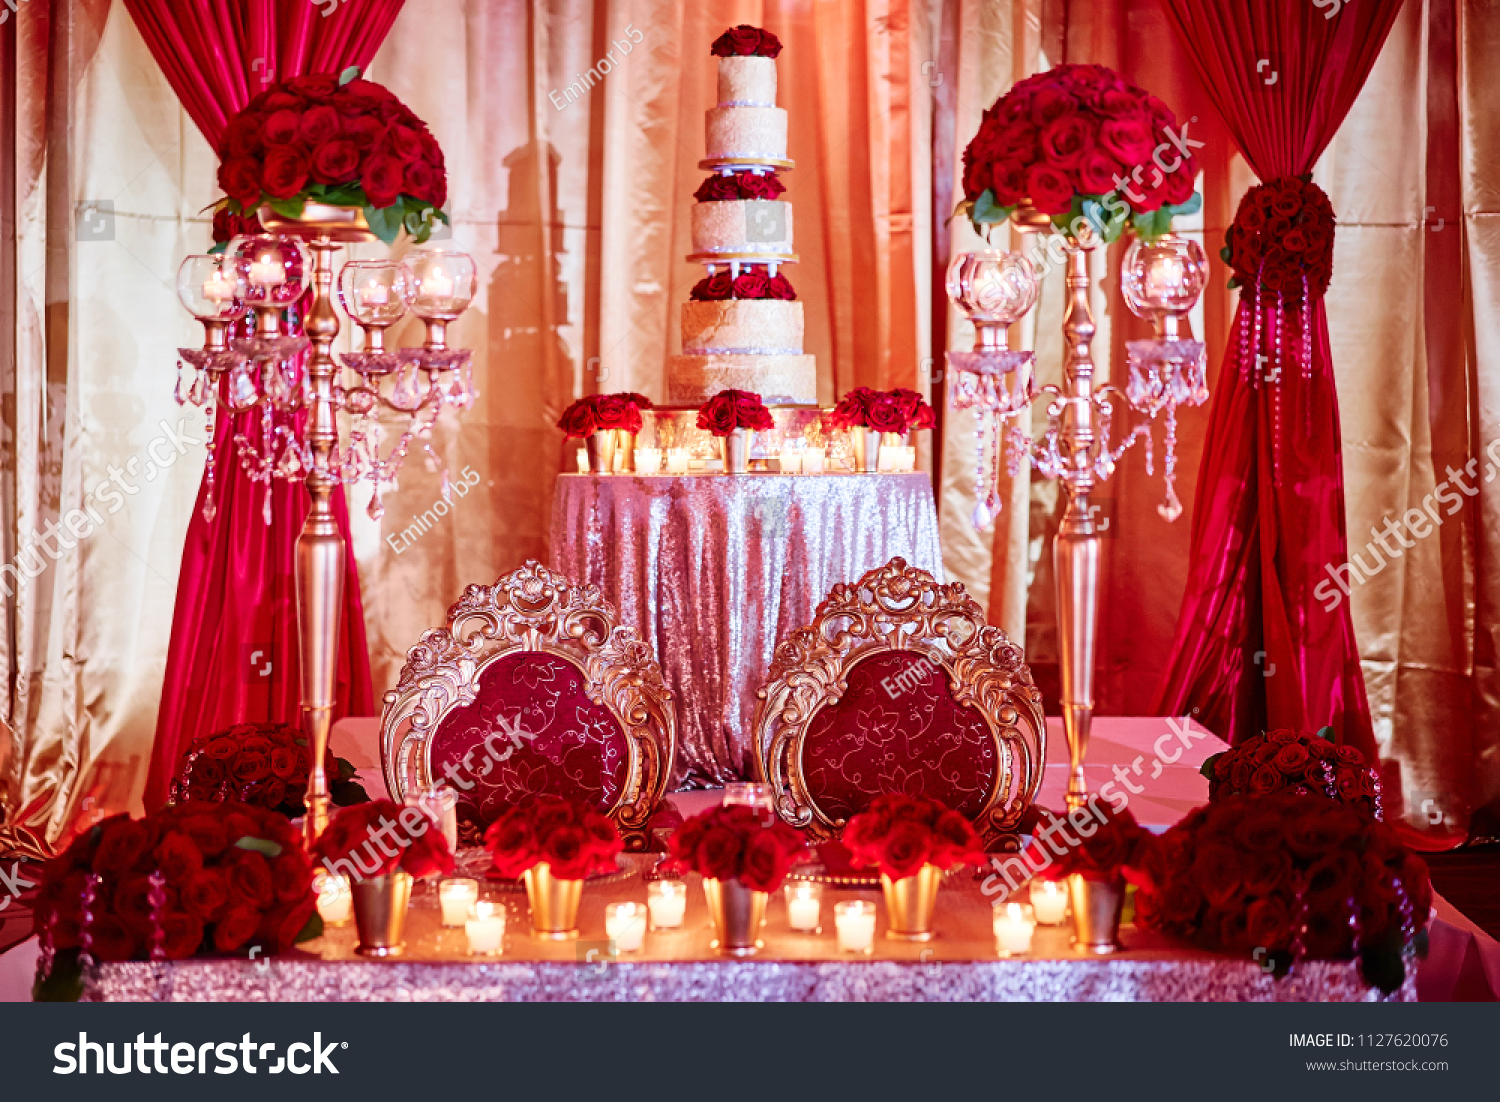 Seat Bride Groom Luxury Indian Wedding Stock Photo Edit Now